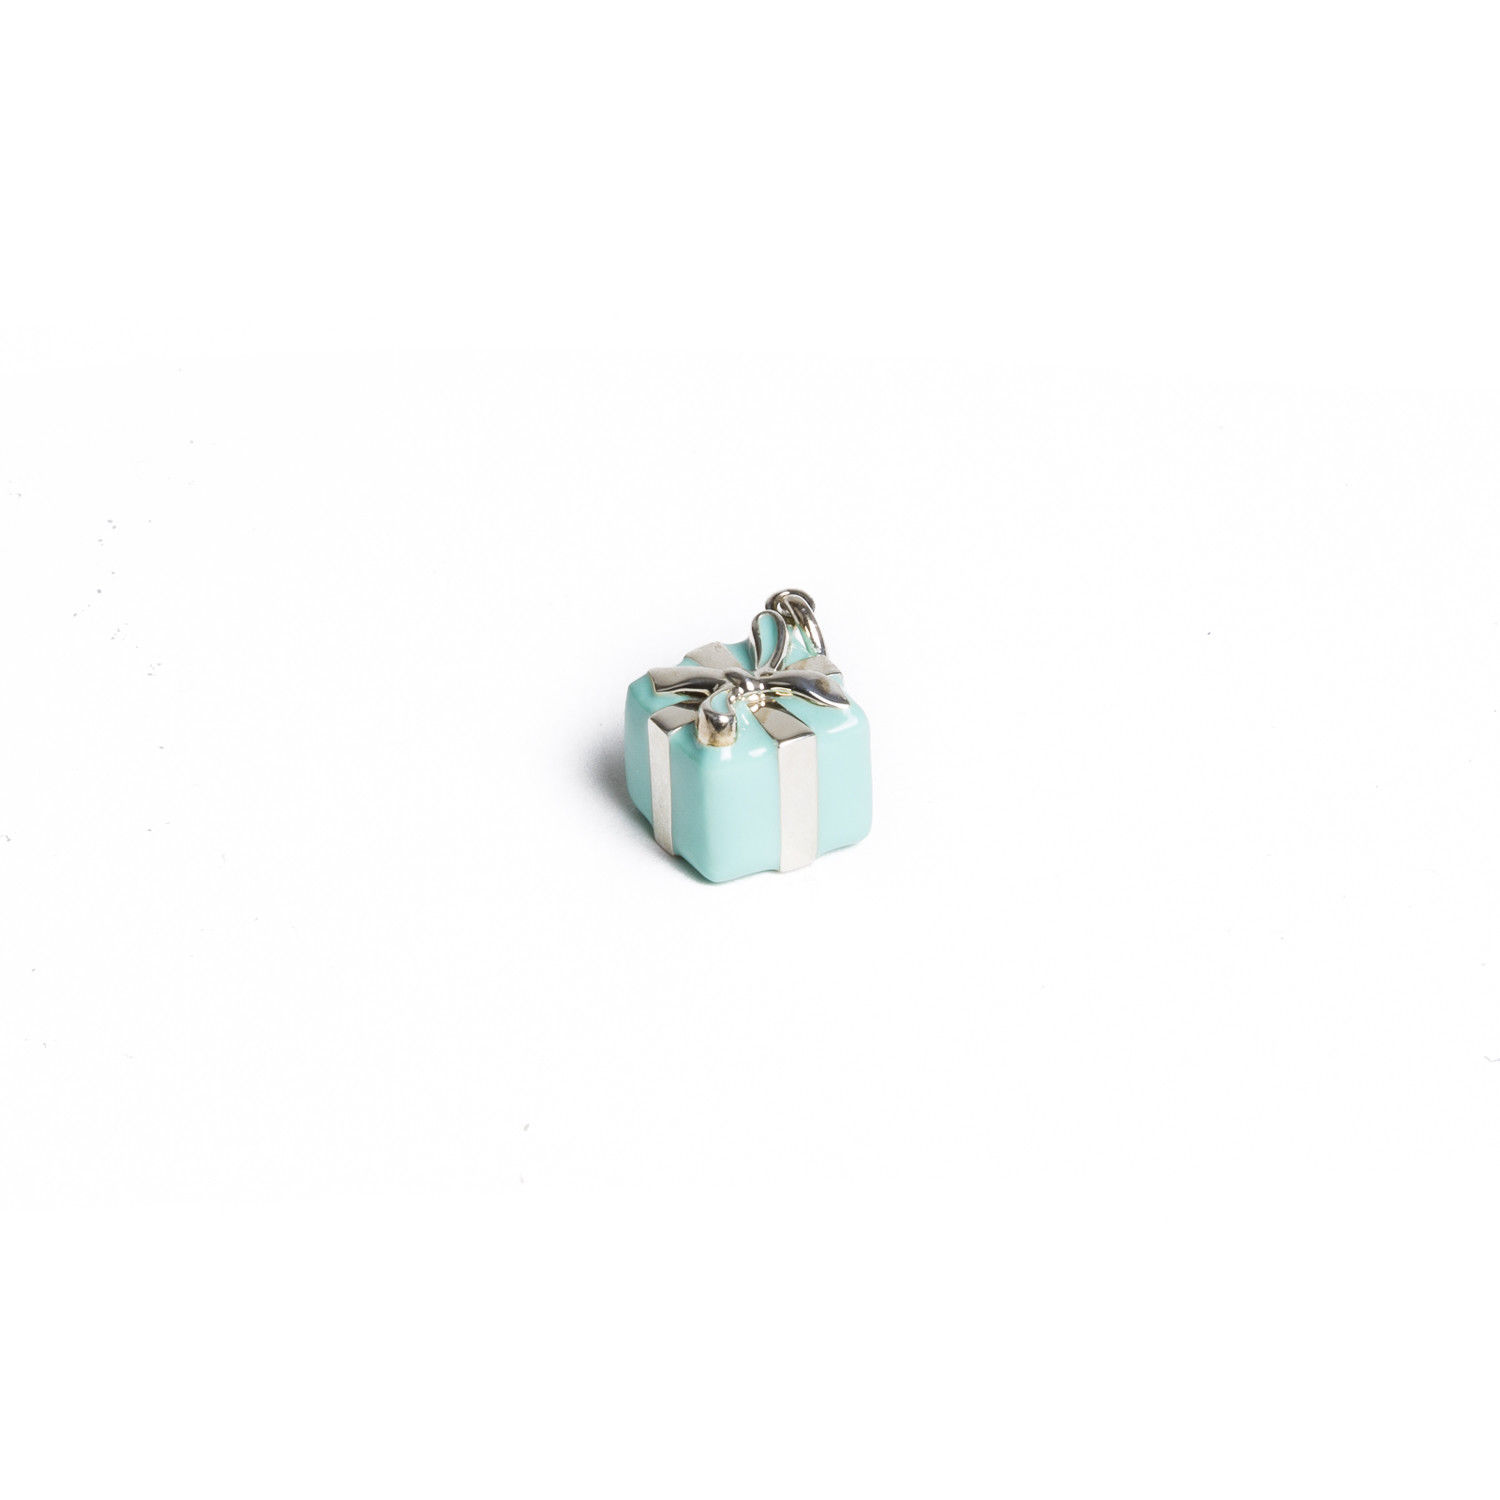 "Image of ""Tiffany & Co. Sterling Silver Blue Box Charm Pendant"""